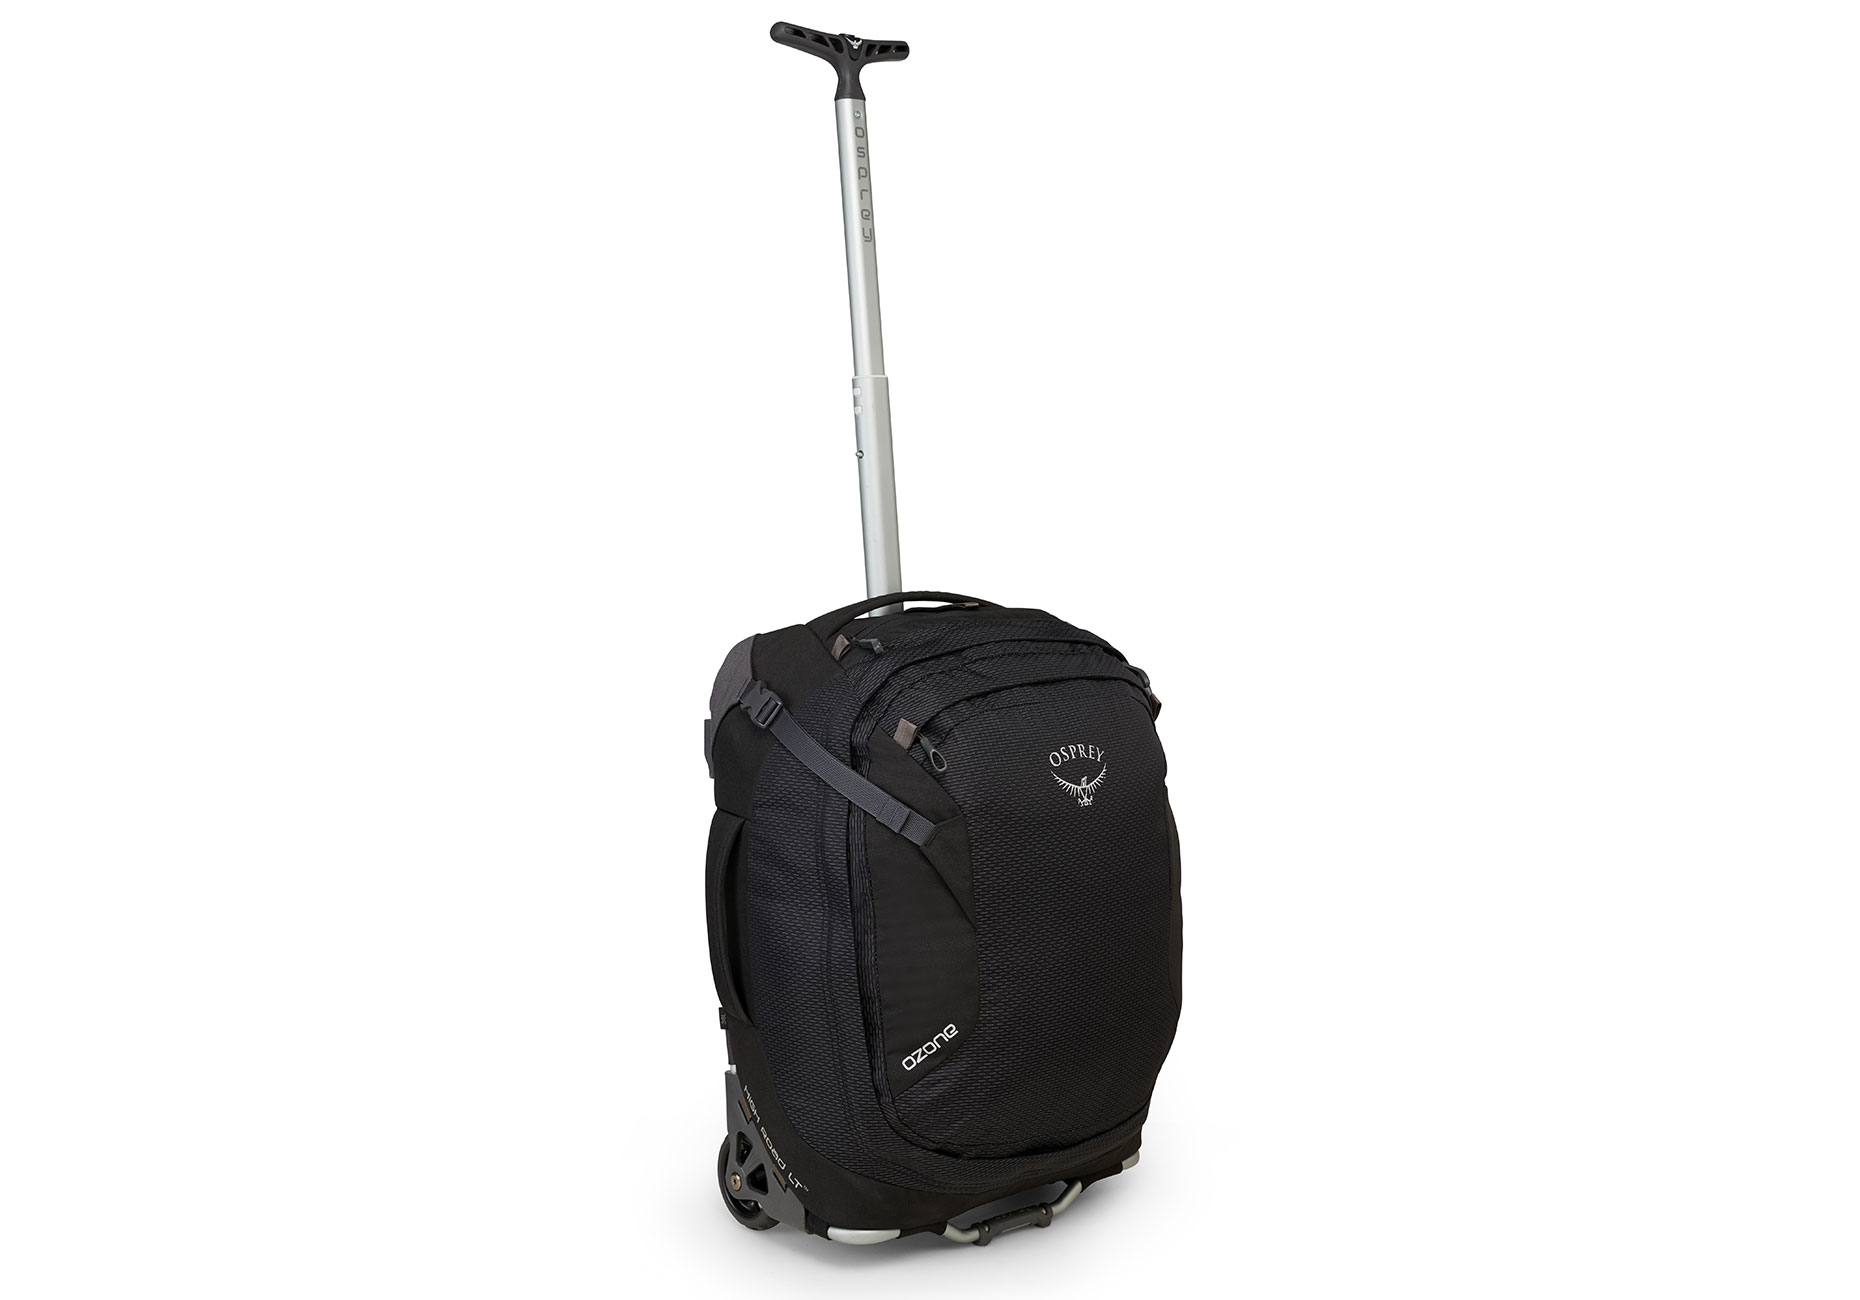 Tried & tested: 5 of the best carry-on cases